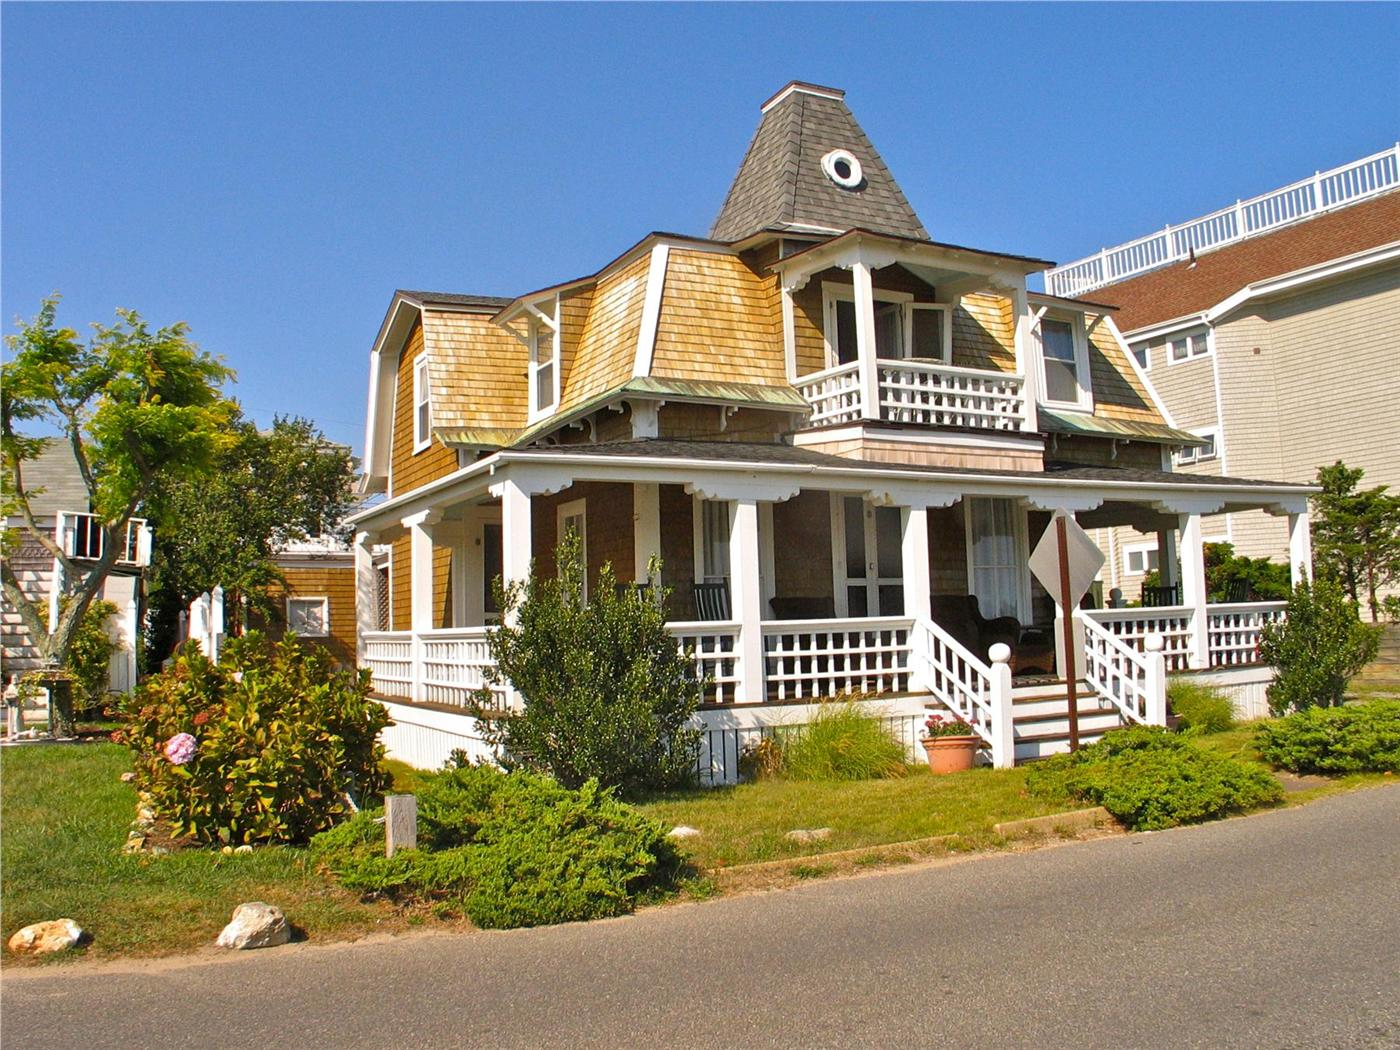 Oak Bluffs Vacation Rental Home In Martha S Vineyard Ma 02557 The Inkwell Beach Is Right Across